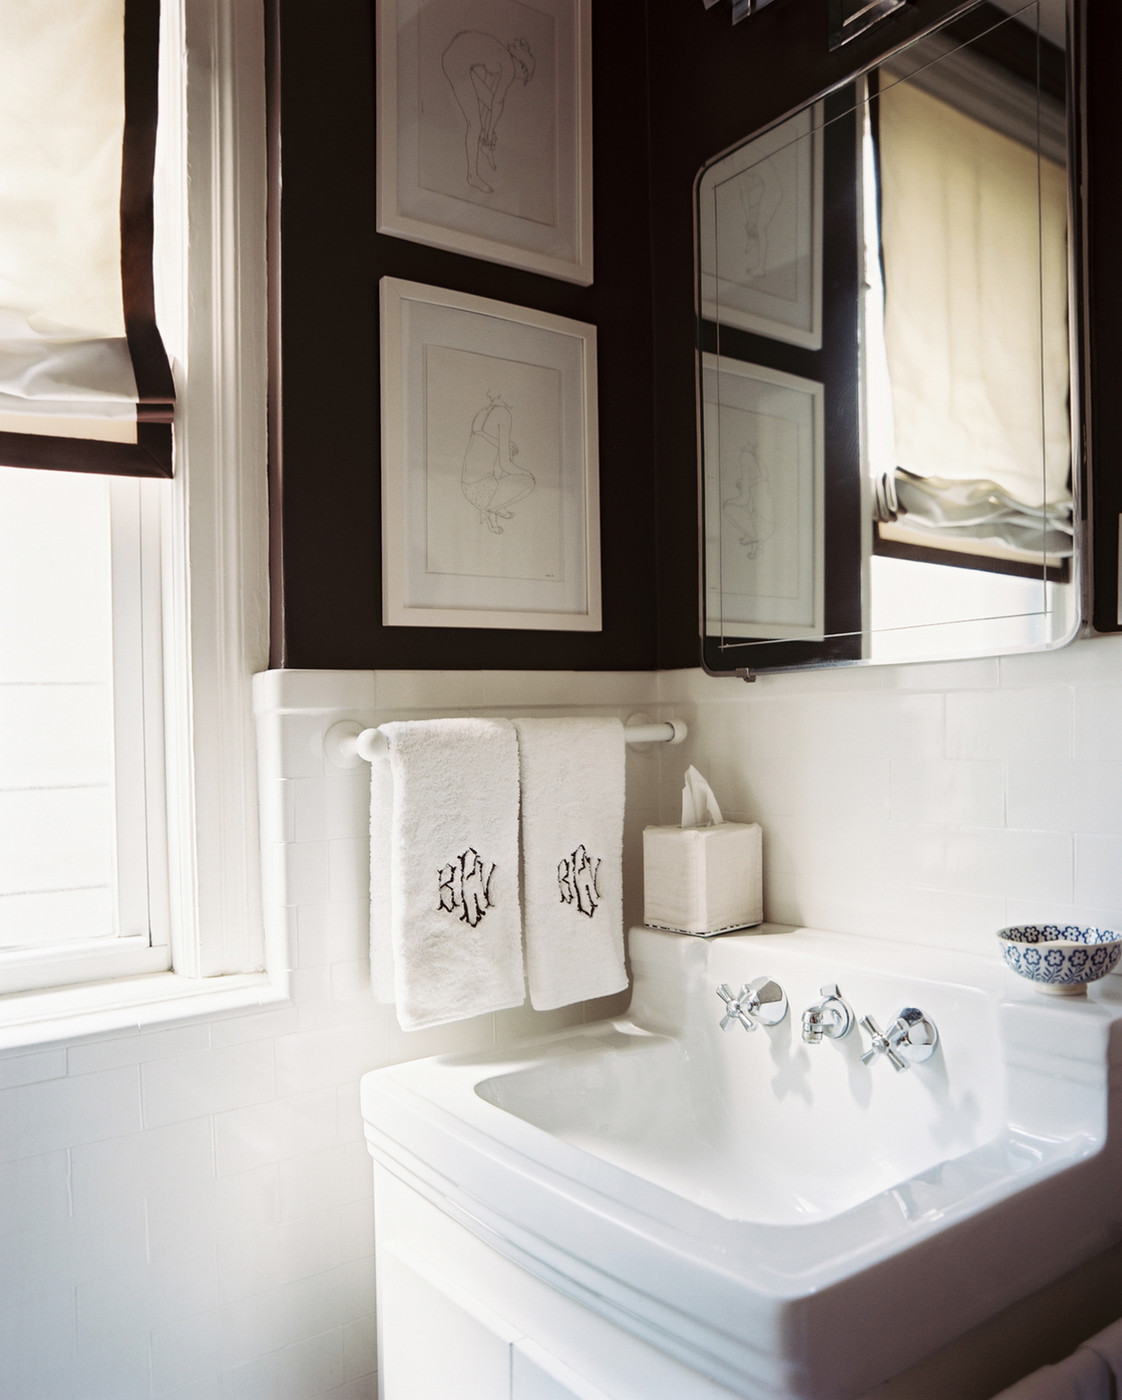 Genial Bathroom Towel Bar Photos (7 Of 18)